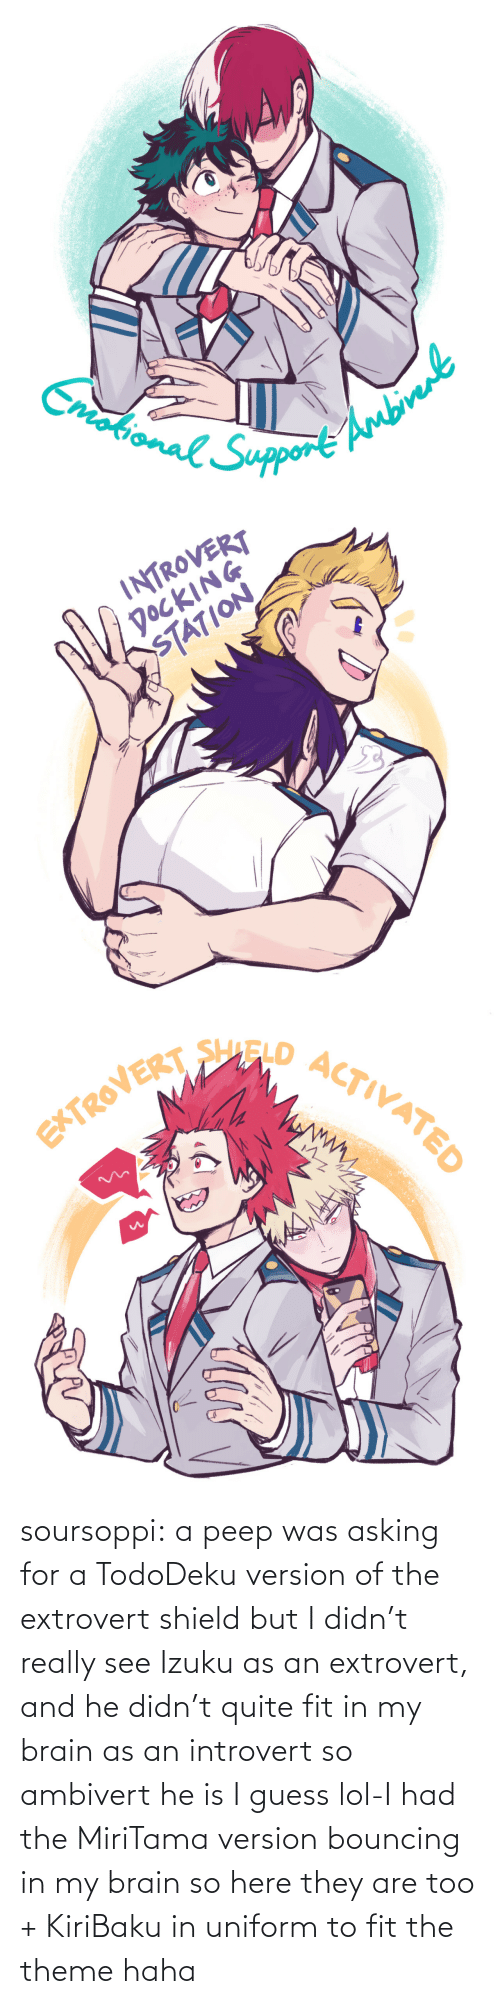 In My: soursoppi:  a peep was asking for a TodoDeku version of the extrovert shield but I didn't really see Izuku as an extrovert, and he didn't quite fit in my brain as an introvert so ambivert he is I guess lol-I had the MiriTama version bouncing in my brain so here they are too + KiriBaku in uniform to fit the theme haha